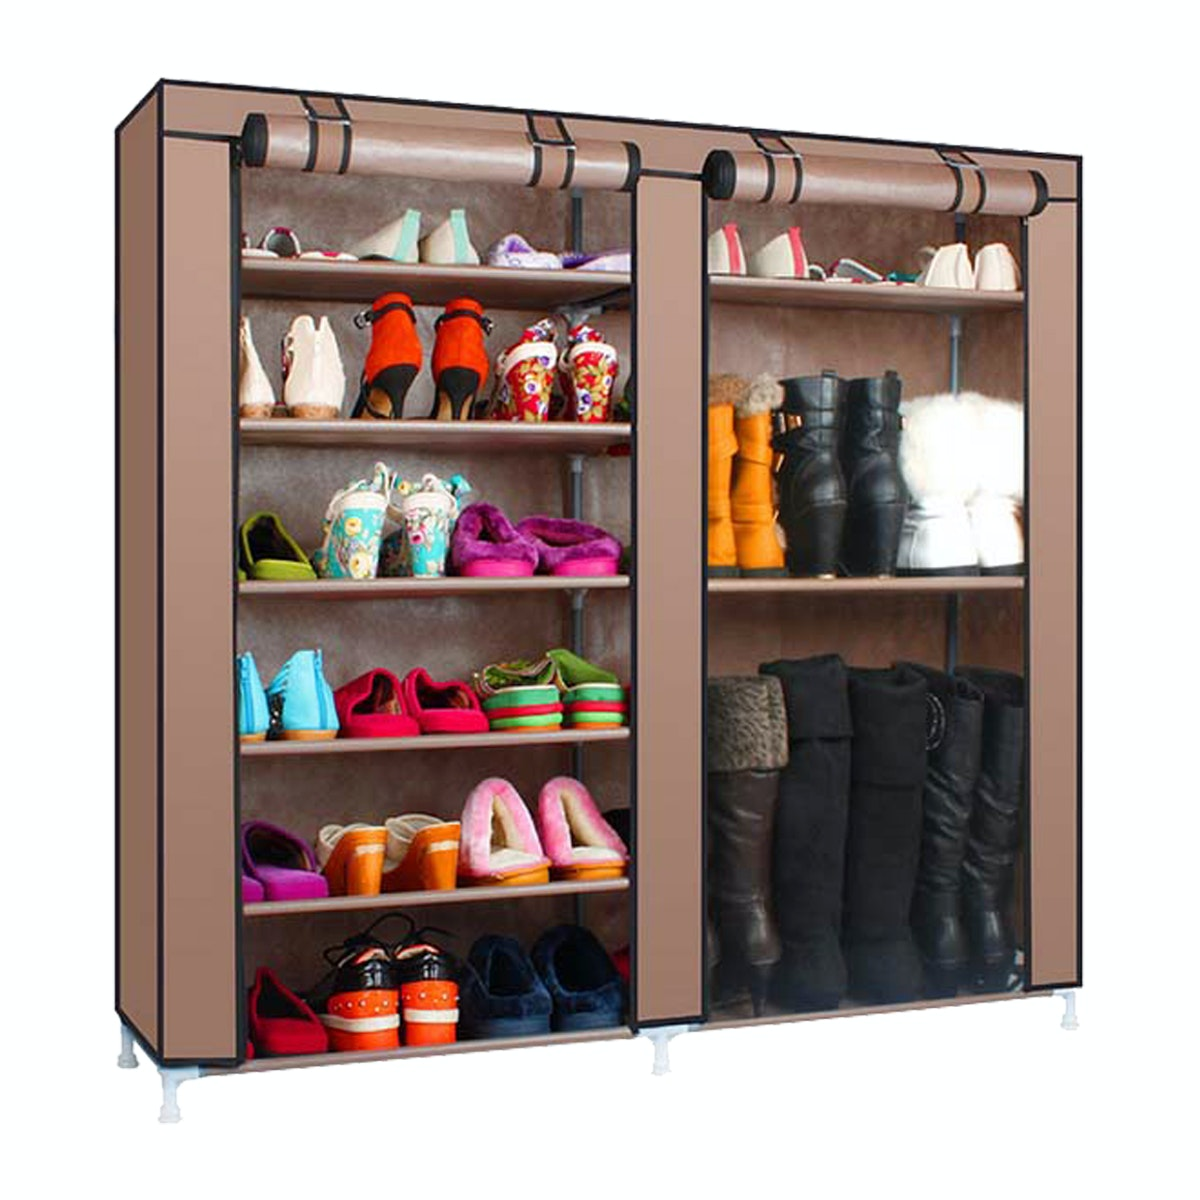 StarHome Rak Sepatu 9 Tingkat dengan Penutup Debu Model Lebar / Horizontal - Shoe Rack 9 Layers with Dust Cover - Portable - Coklat